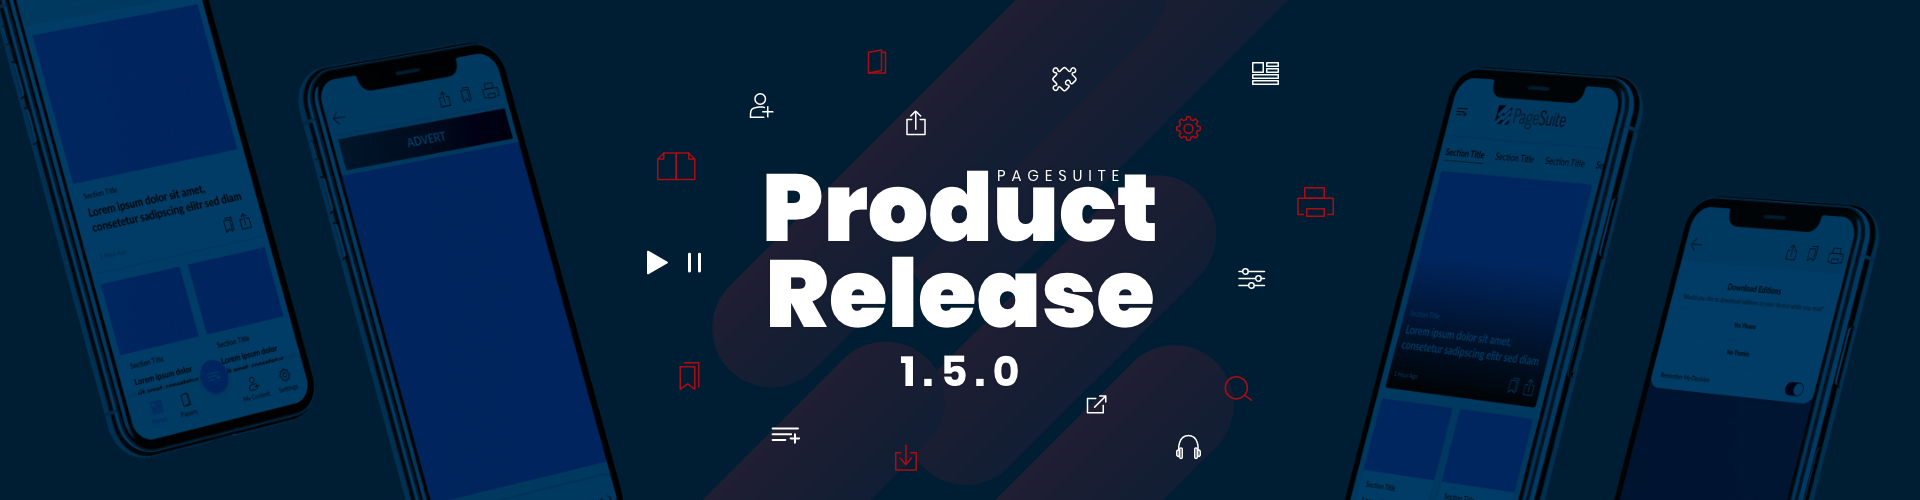 Product Release Notes – 1.5